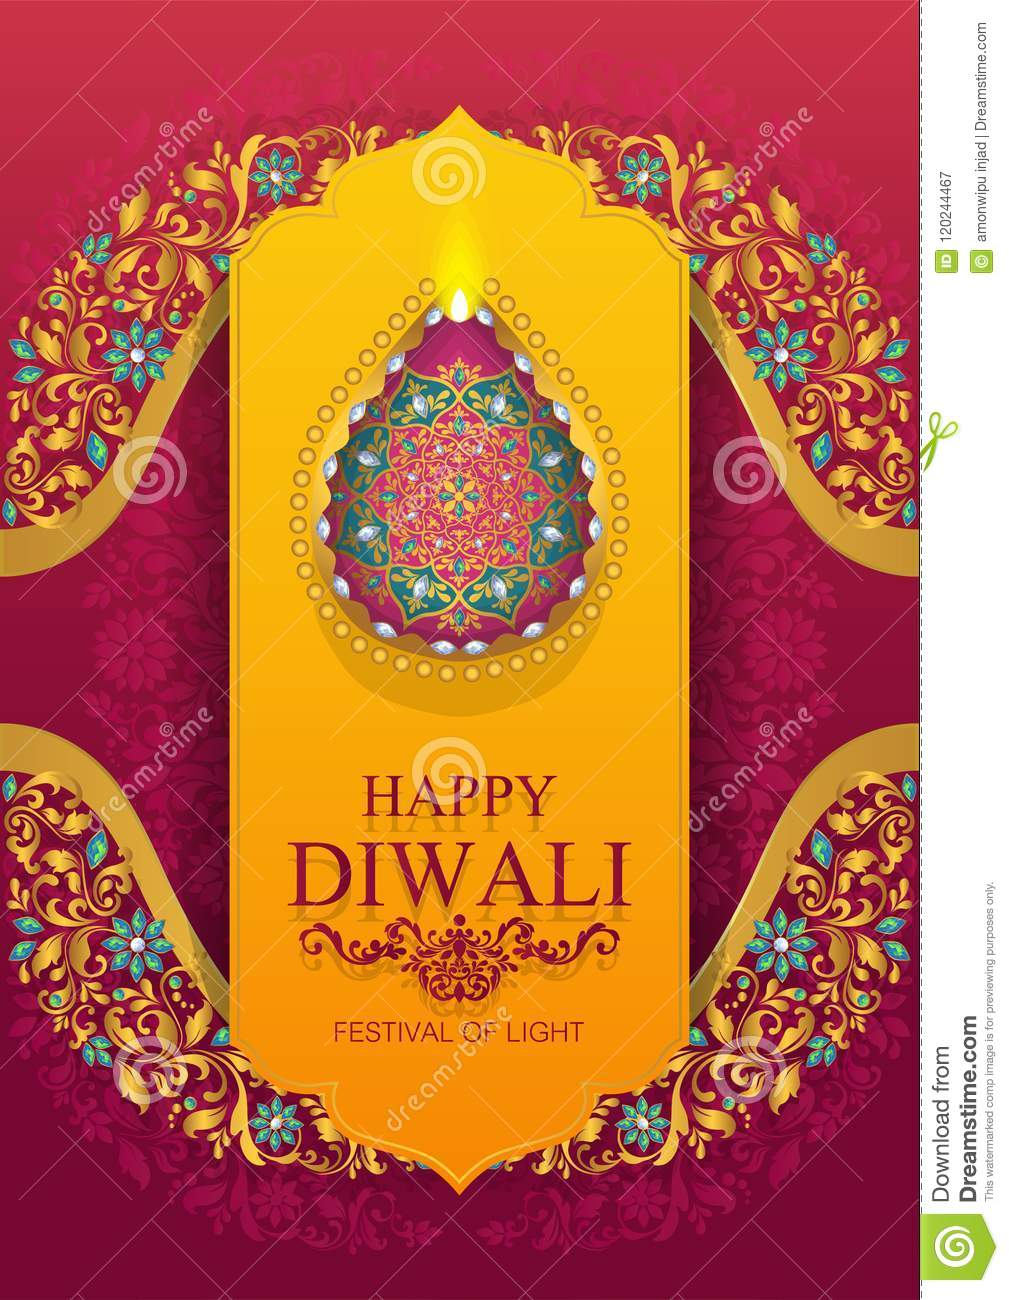 Happy diwali festival card stock vector illustration of editable happy diwali festival card m4hsunfo